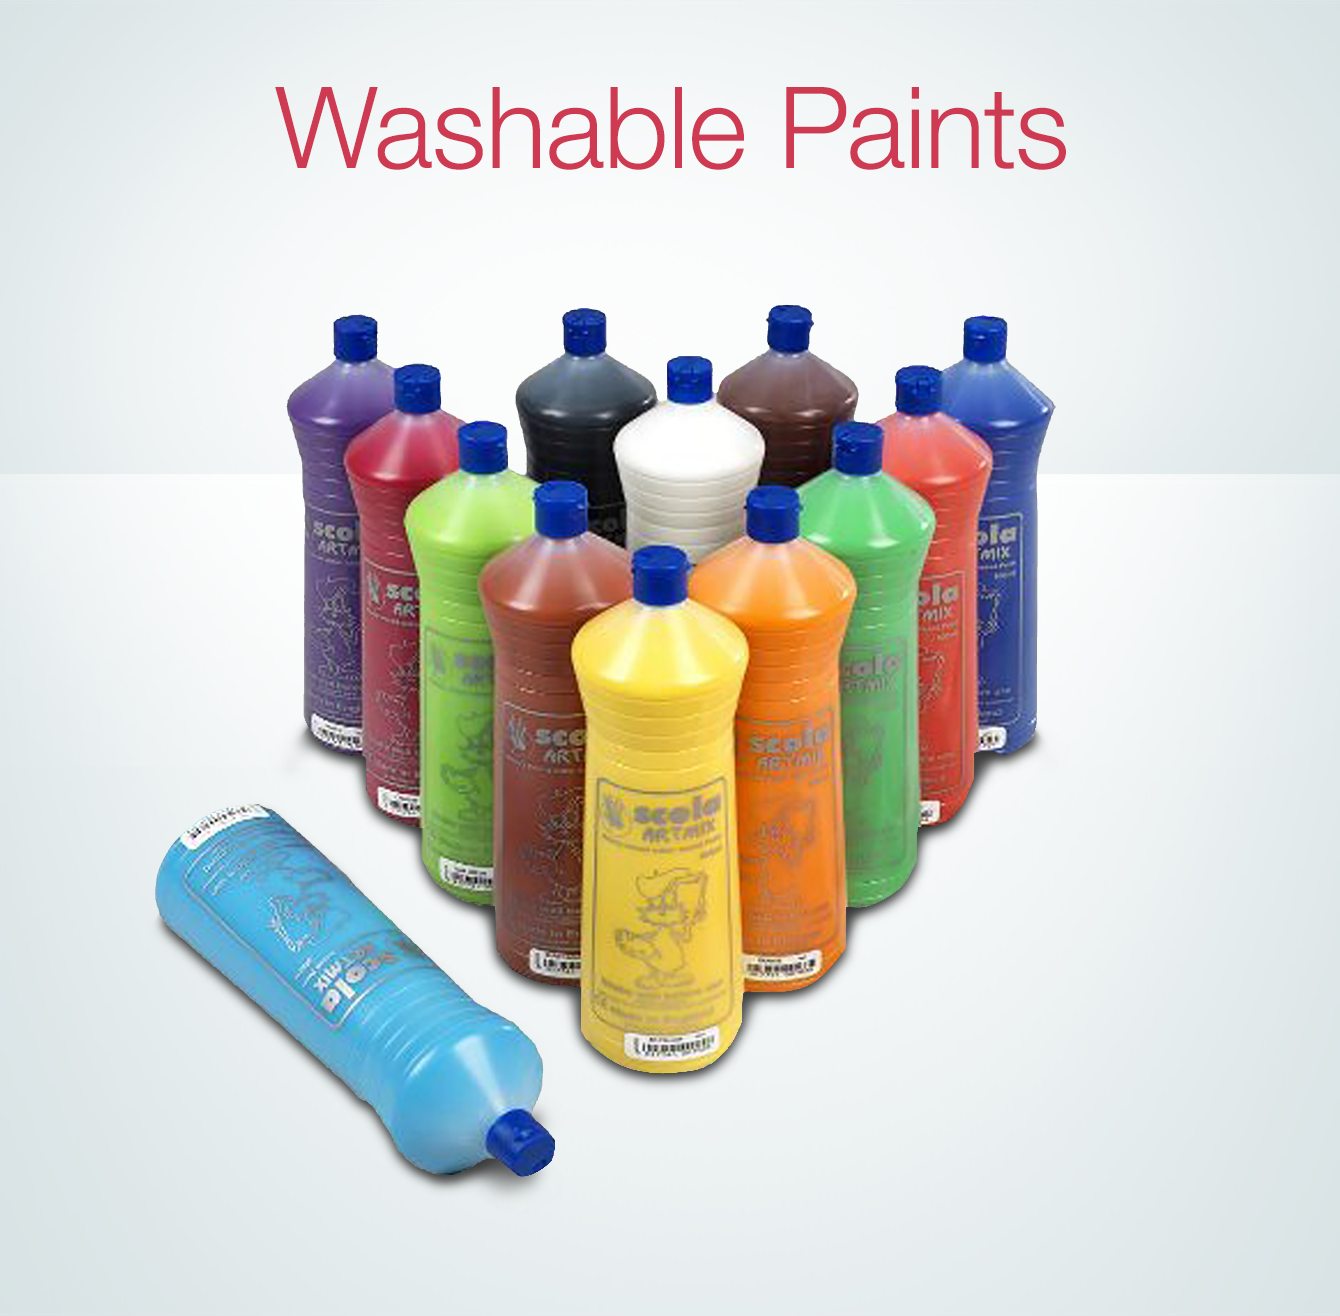 Washable Paints